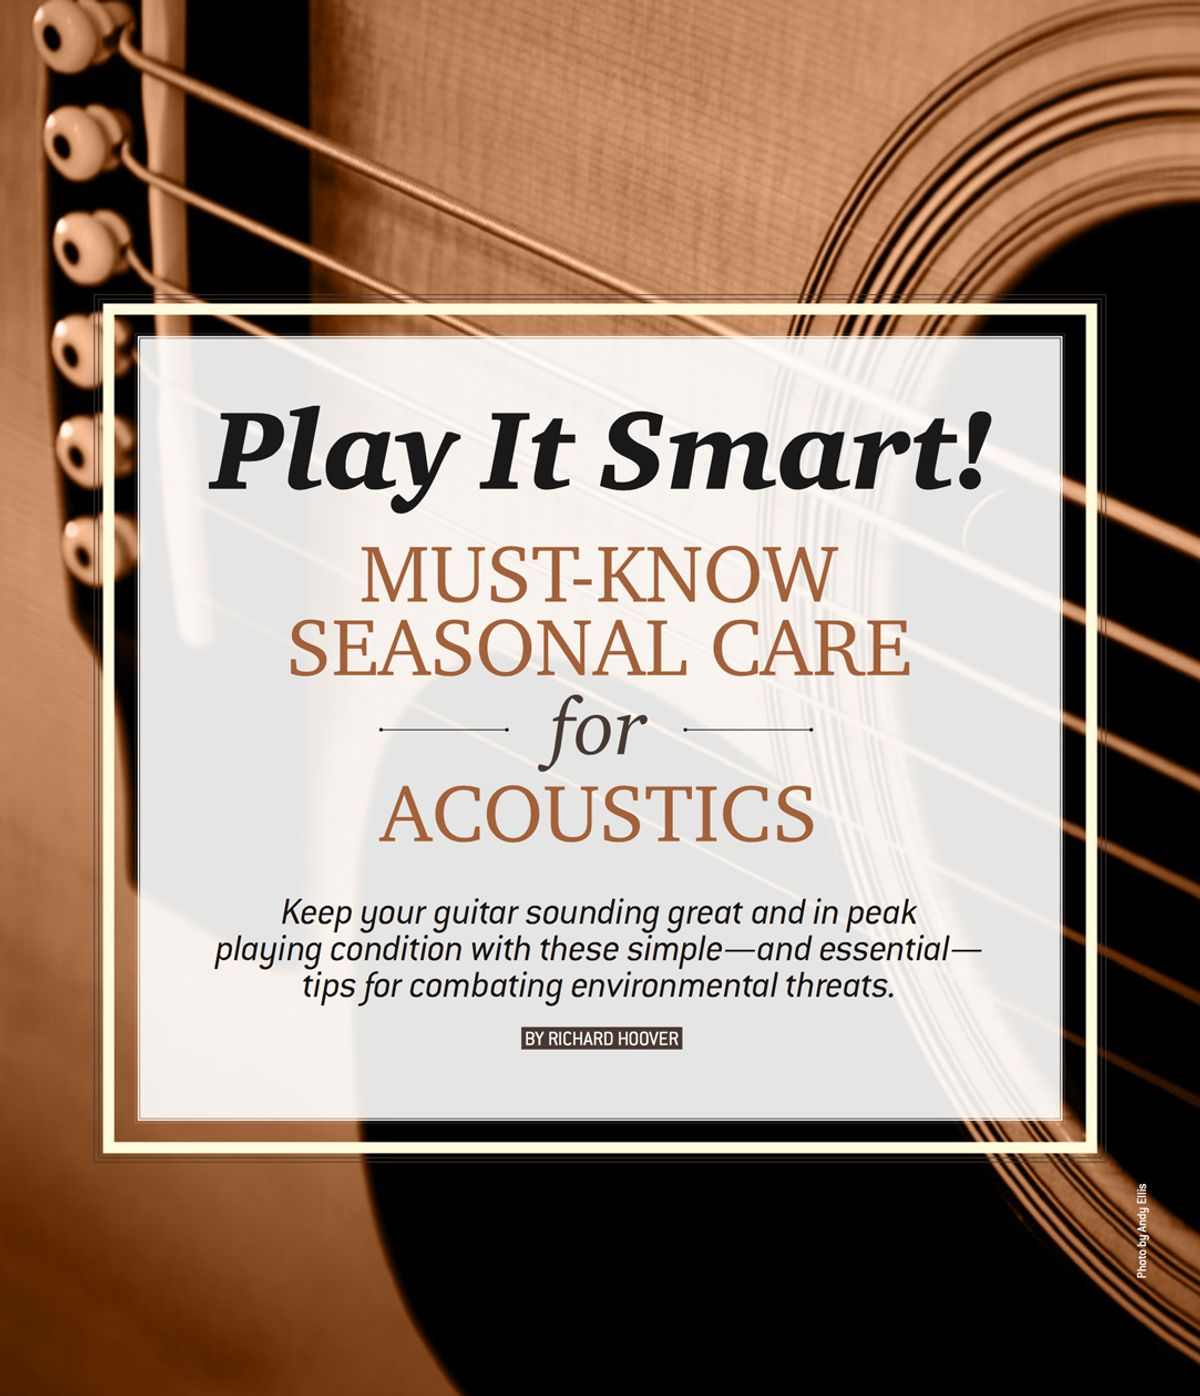 Play It Smart! Must-Know Seasonal Care for Acoustics